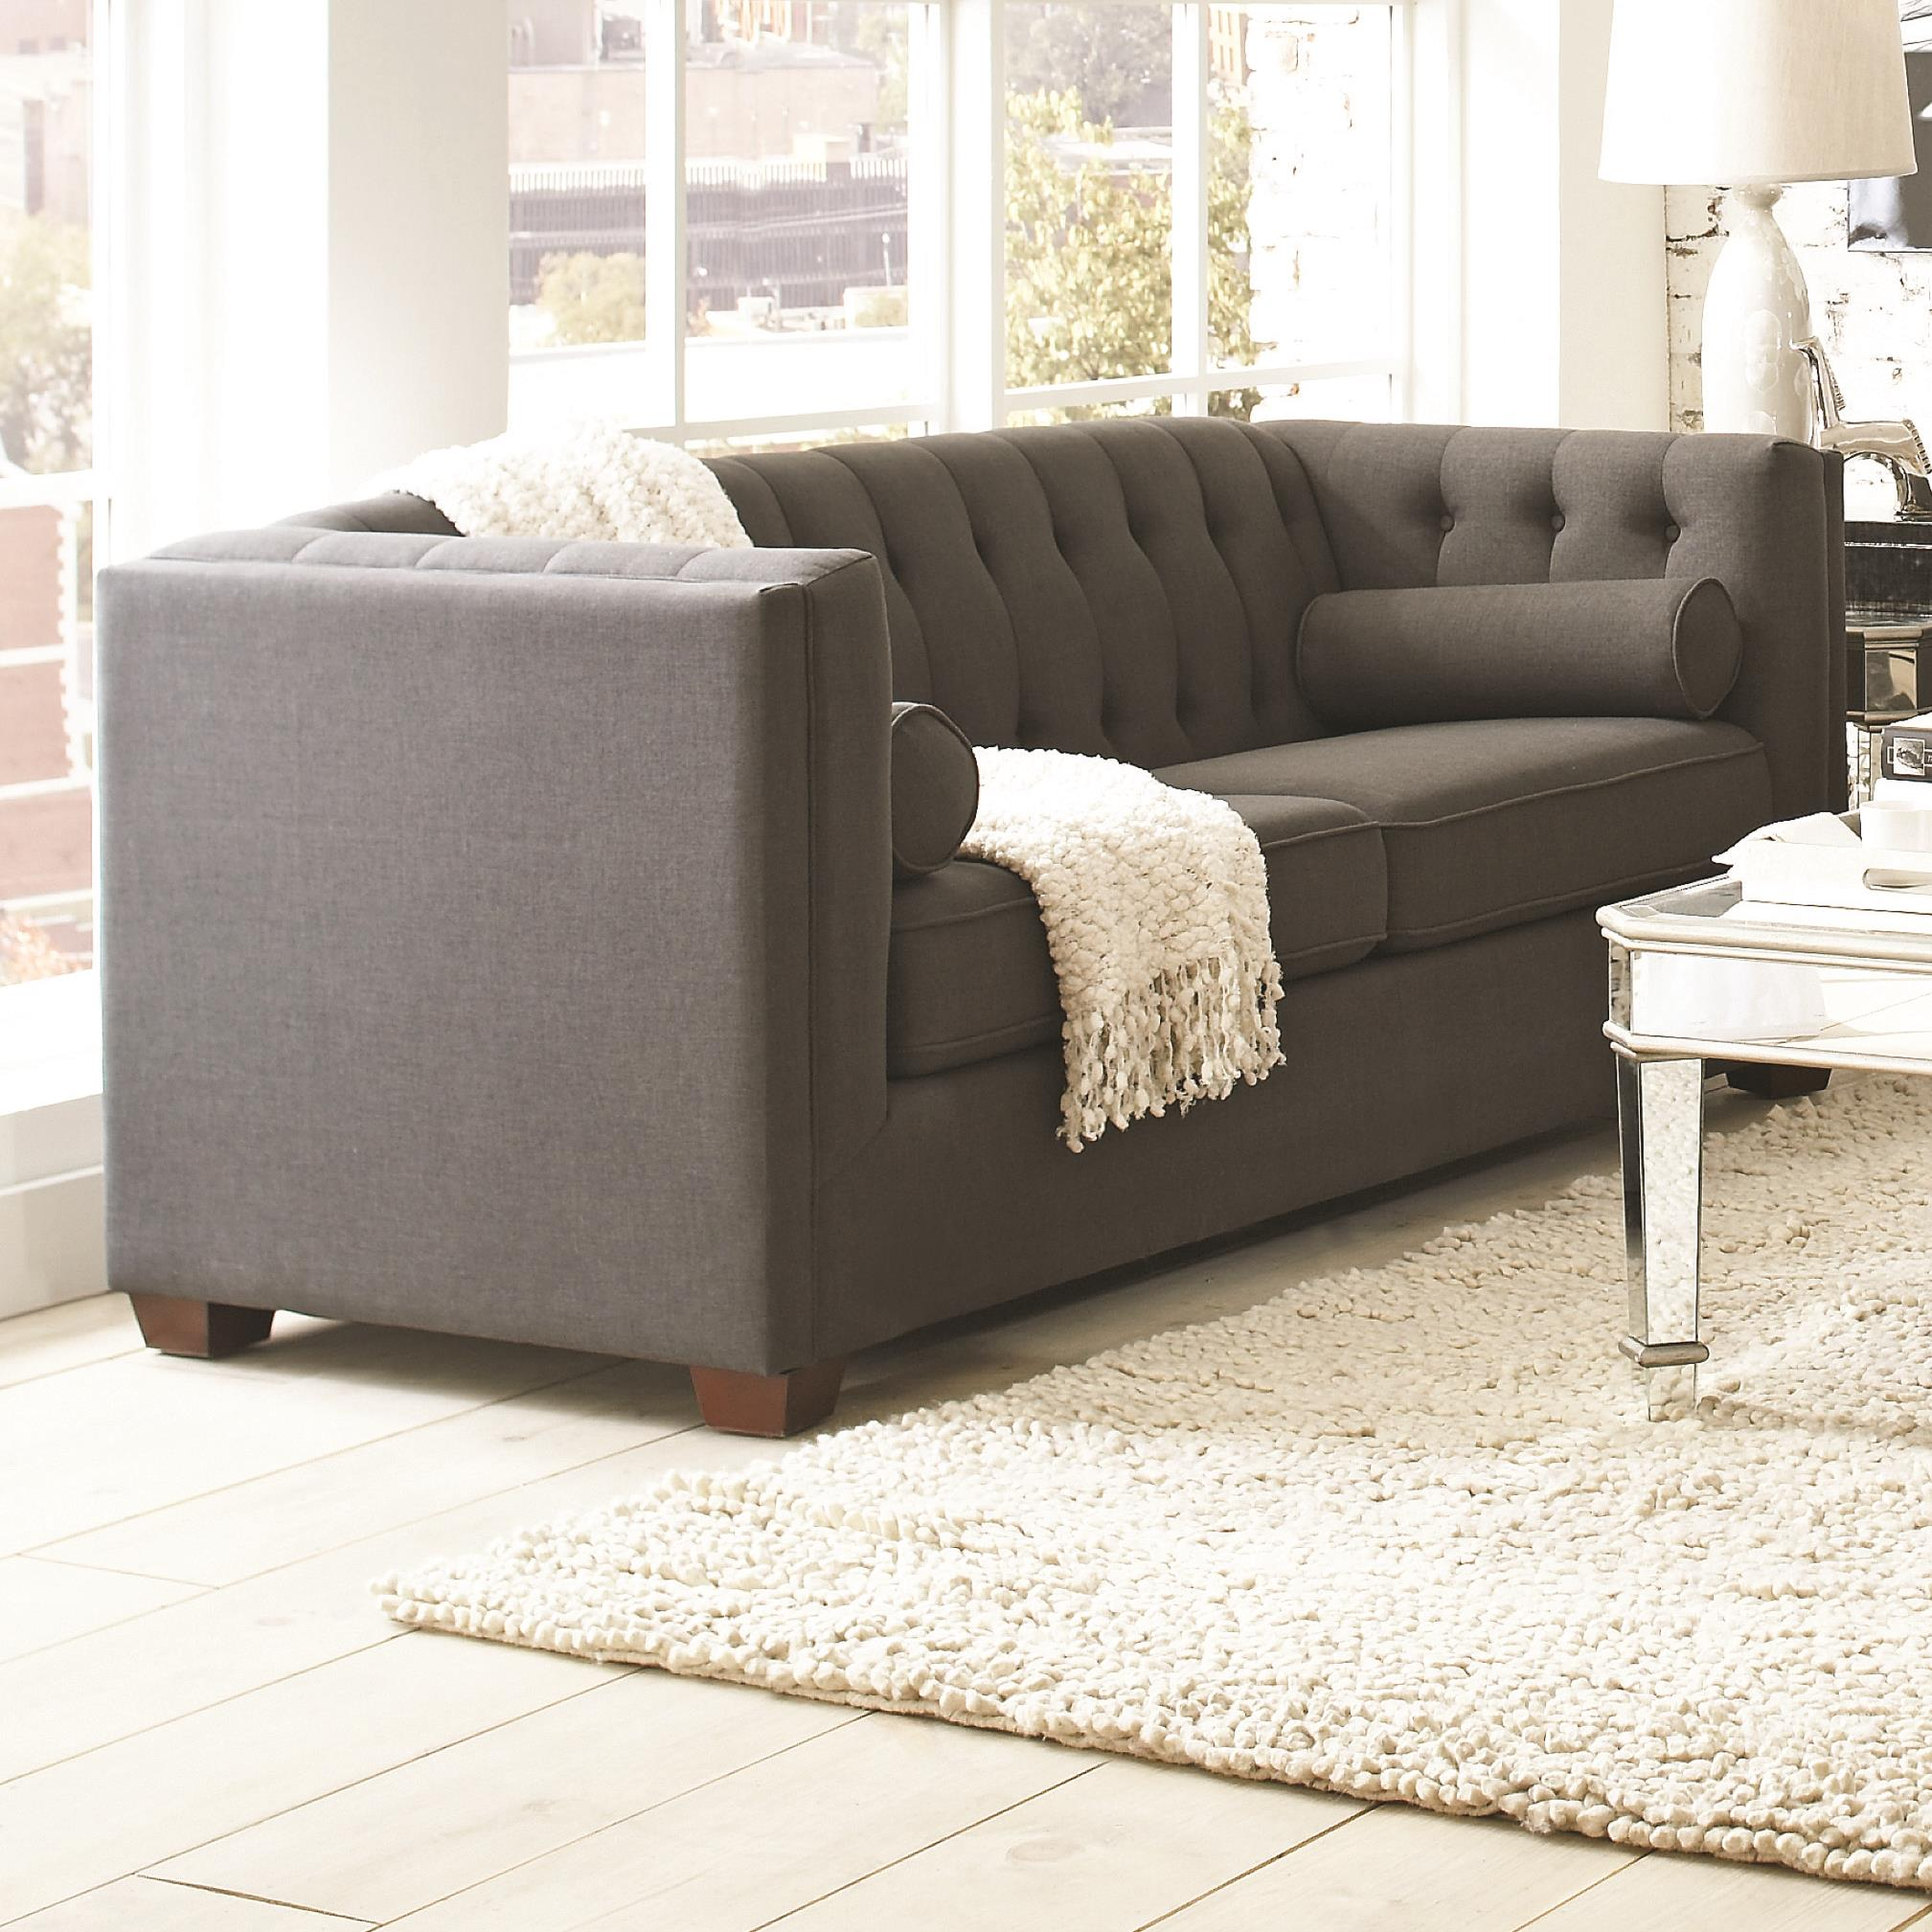 Coaster Cairns Sofa   Item Number: 504901 Charcoal